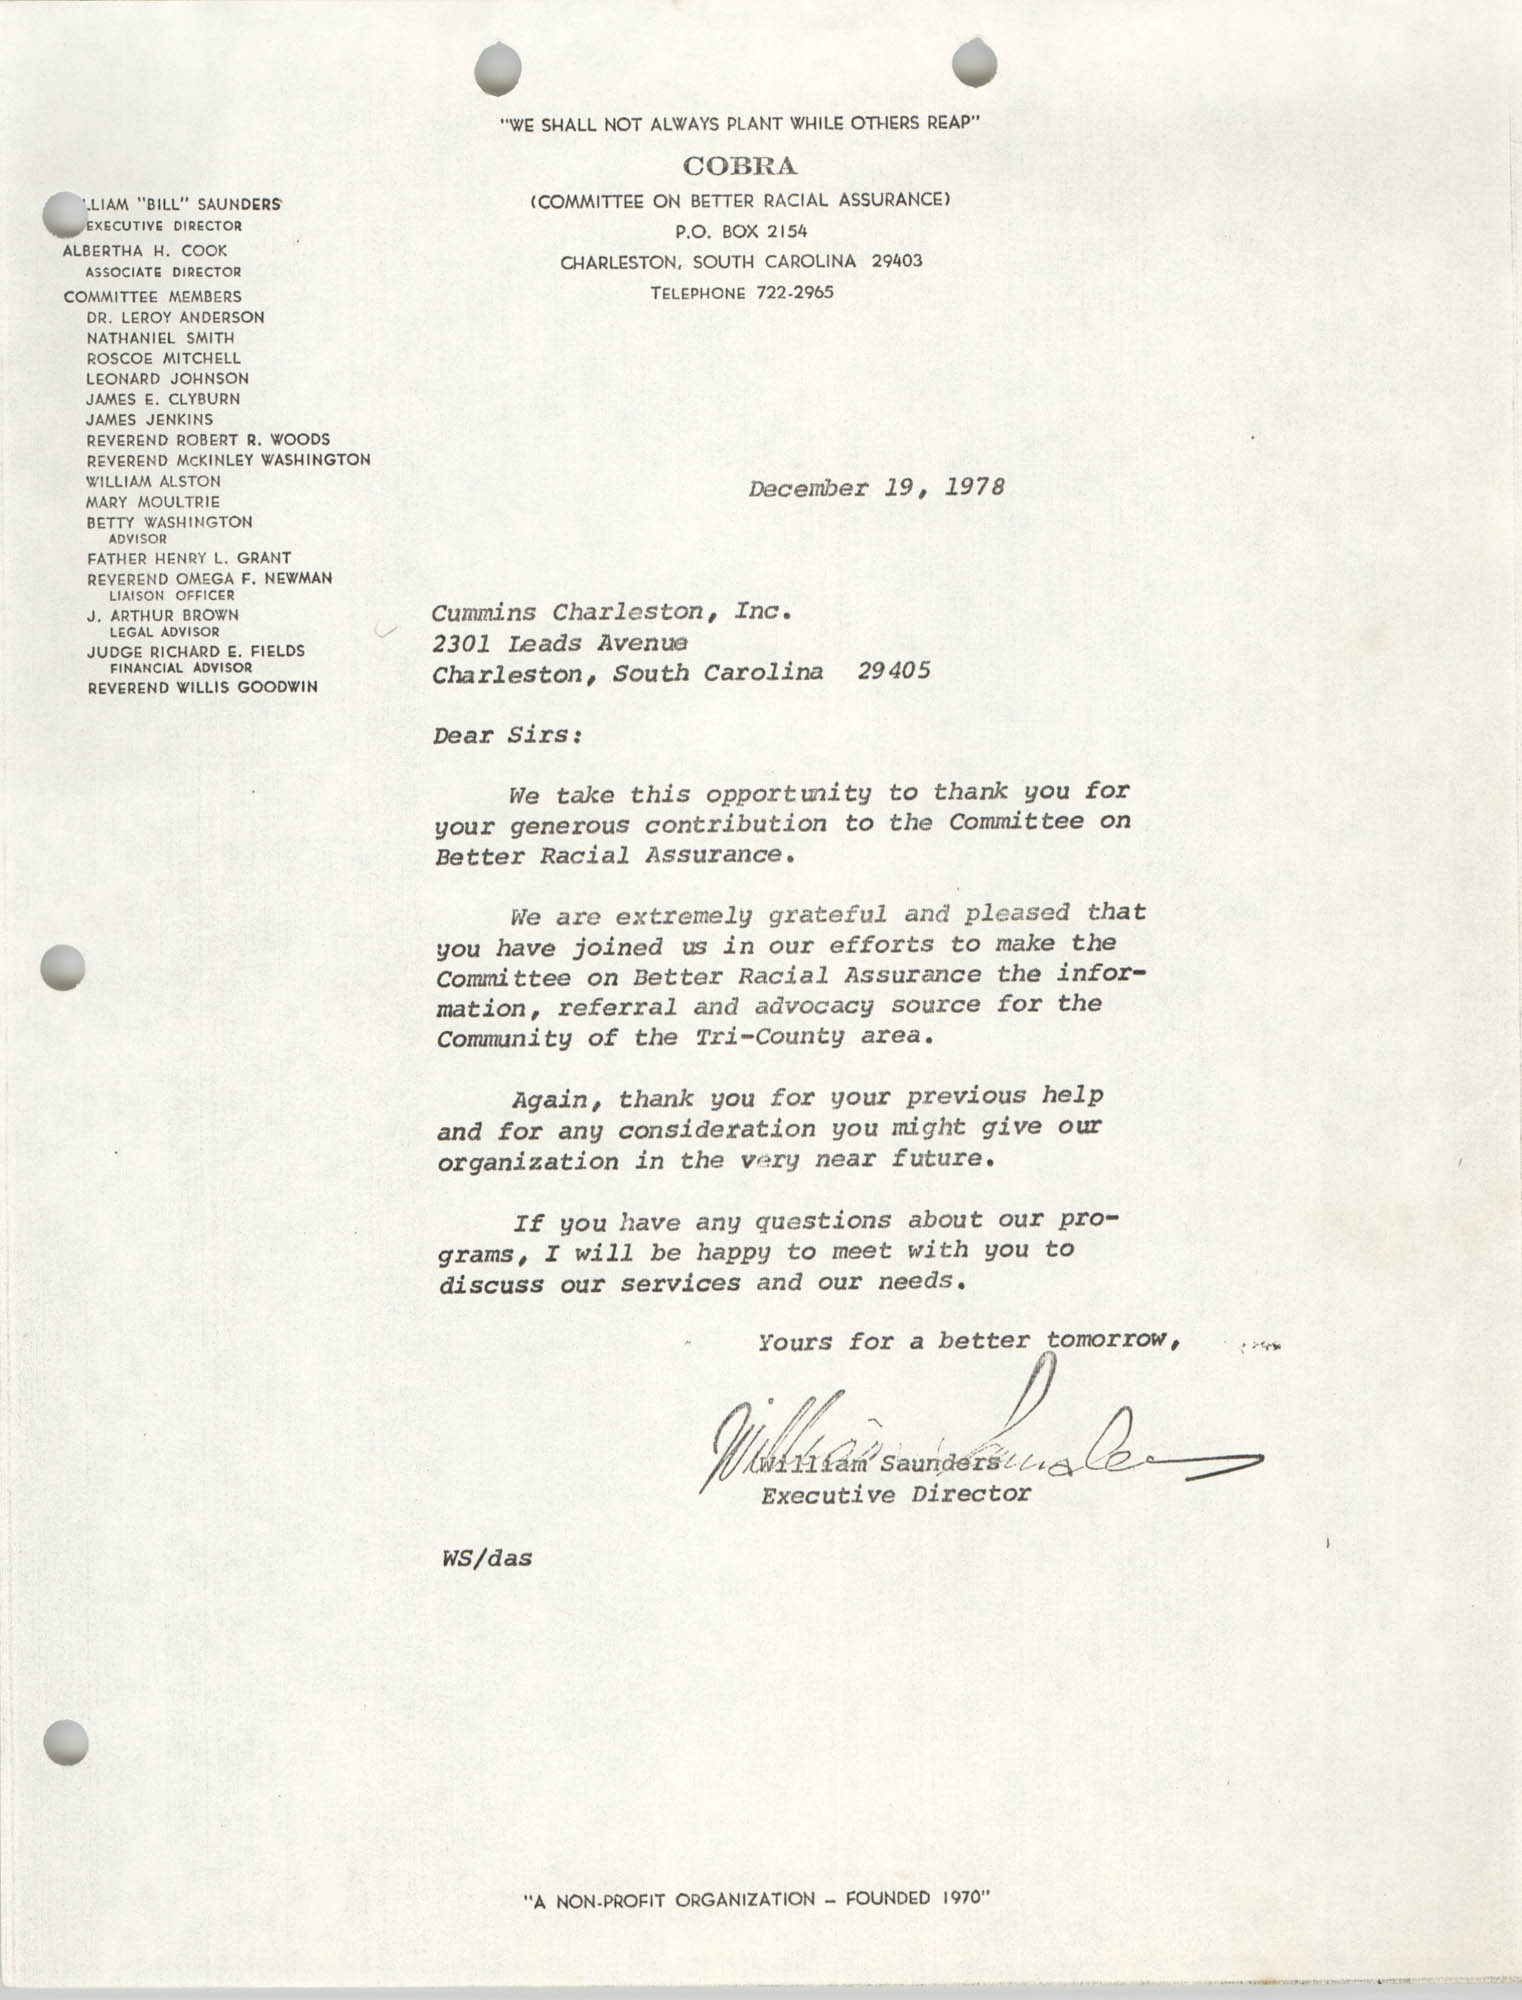 Letter from William Saunders to Cummins Charleston, Inc., December 19, 1978